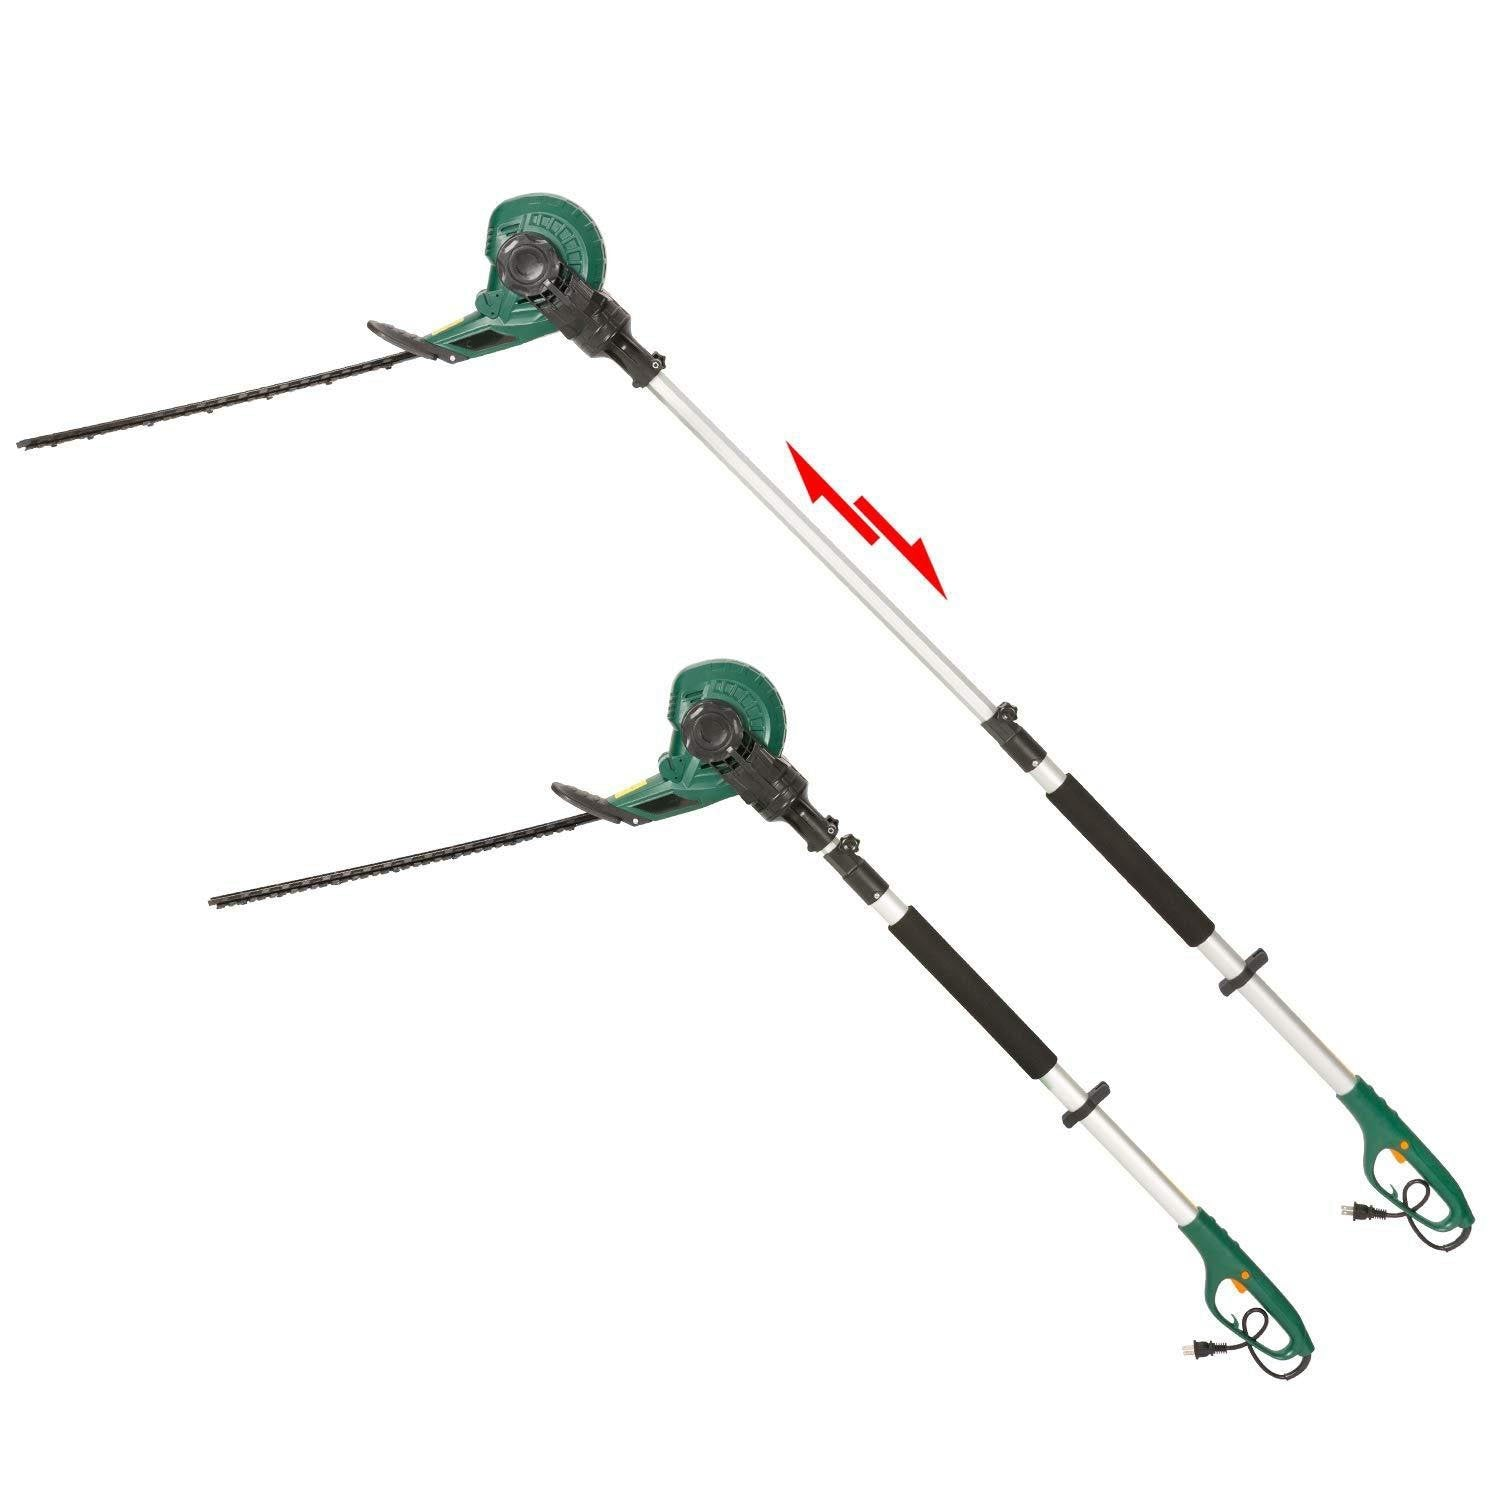 2 in 1 Multi-Angle Cutting Telescopic Electric Hedge Trimmer